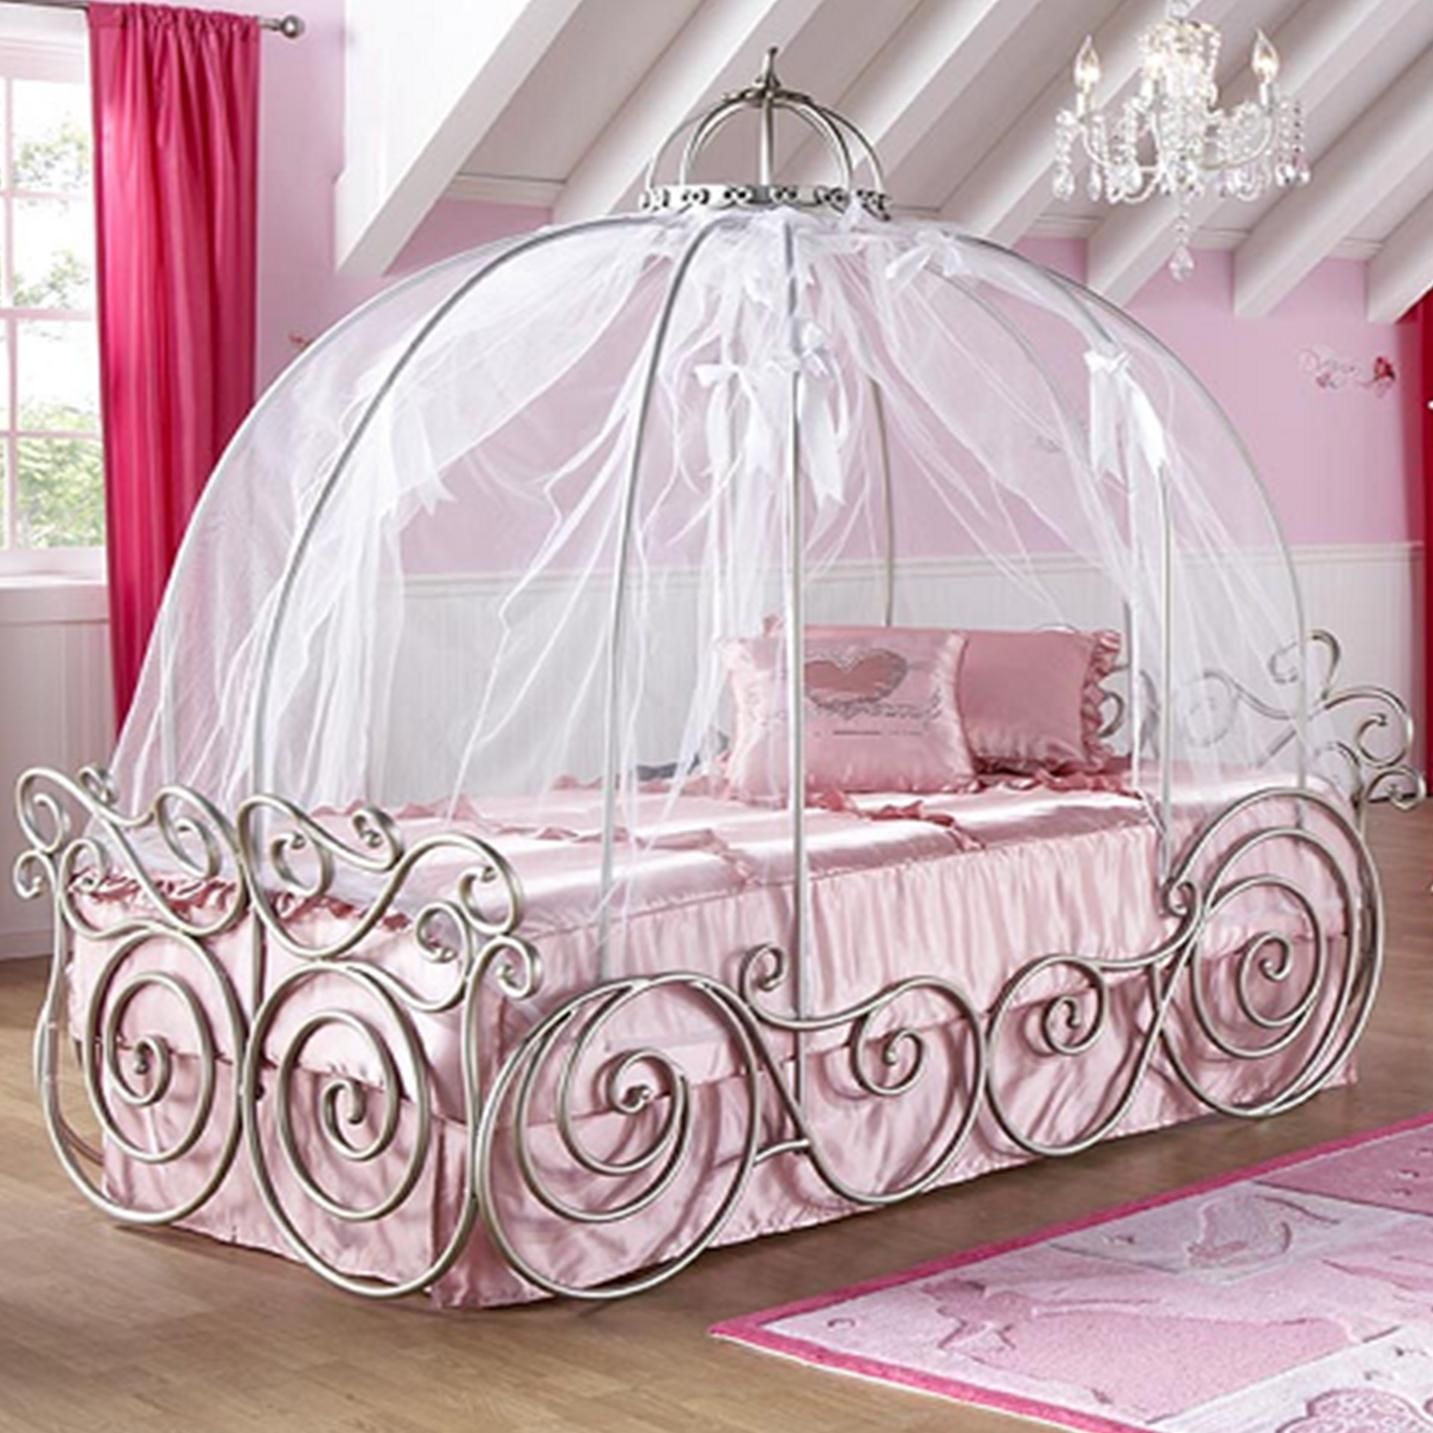 Canopy Bedroom Sets Girls disney princess twin canopy bedcanyon | ideas for home